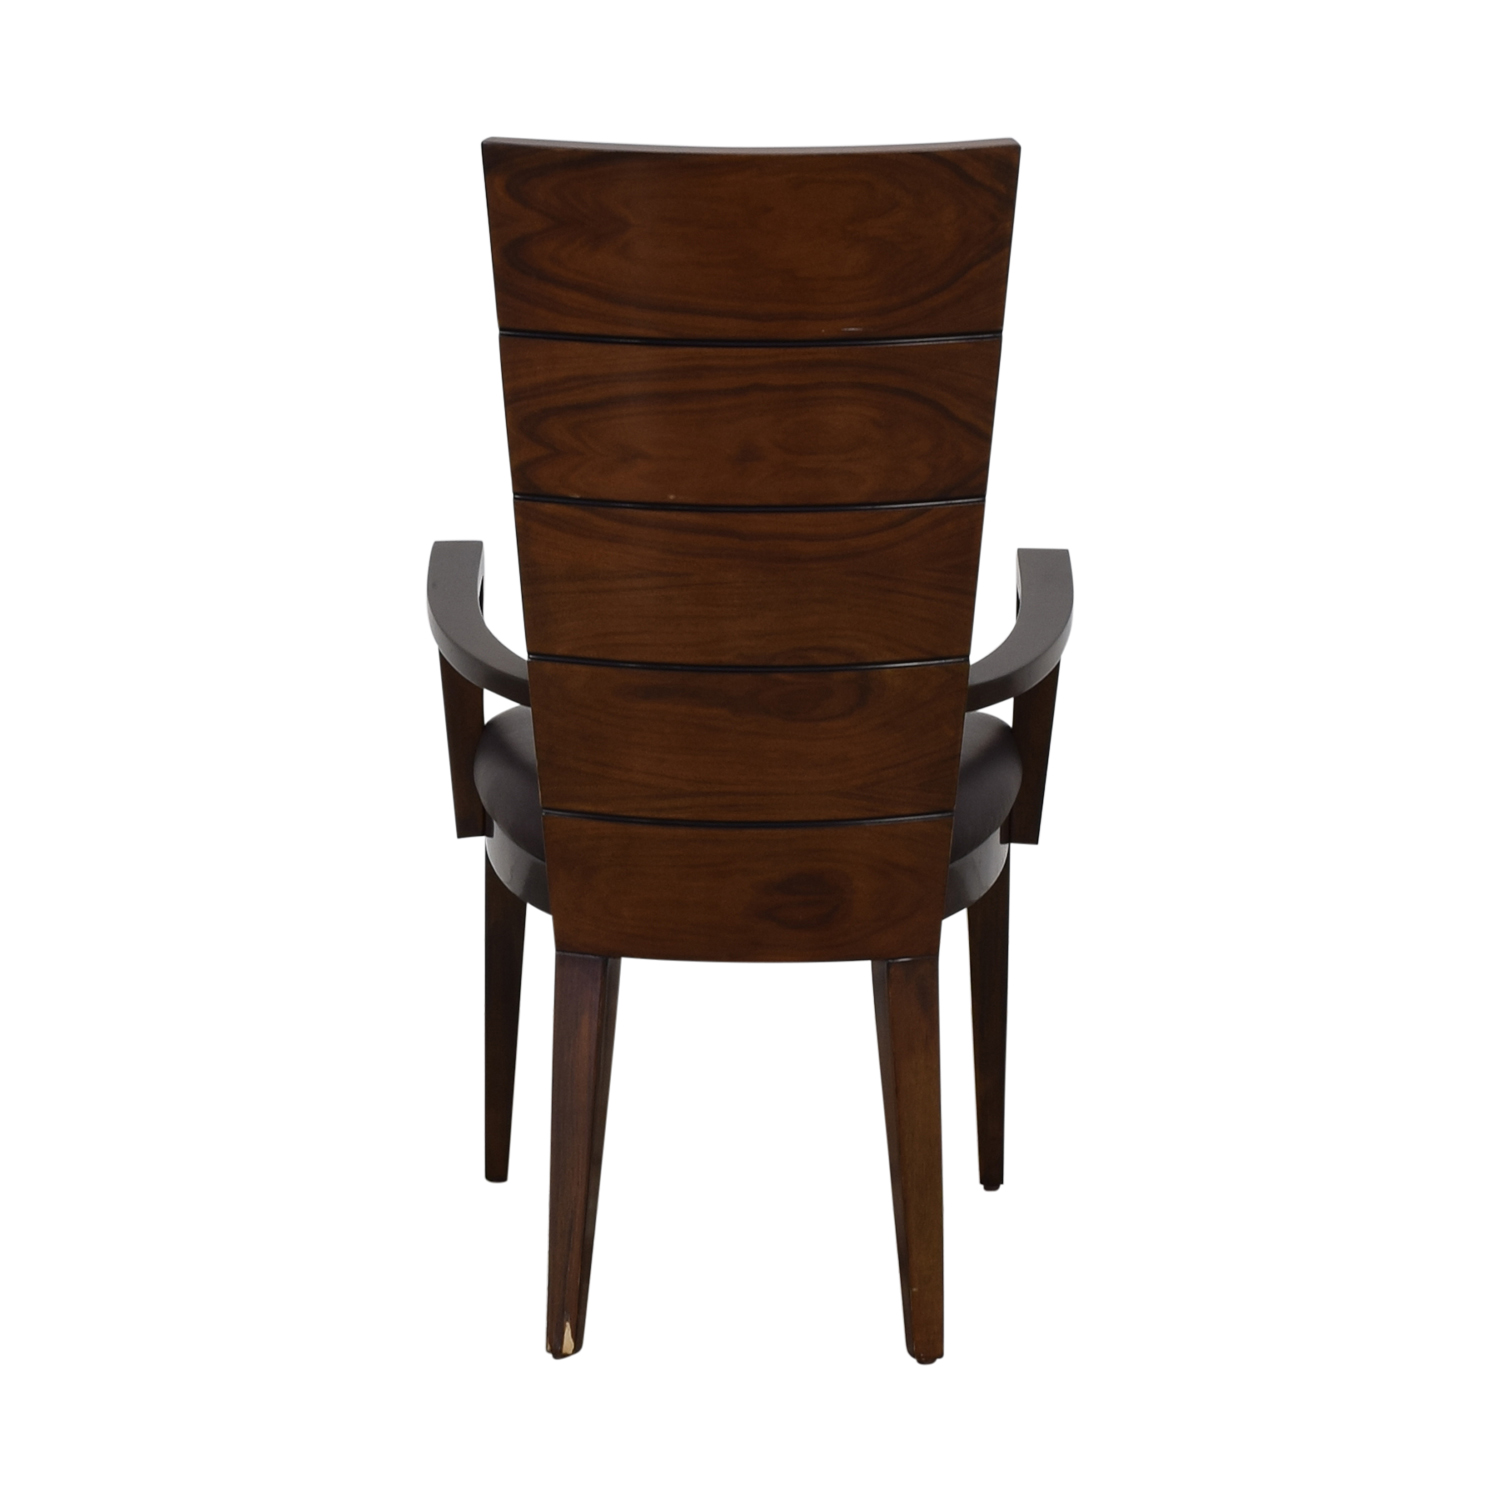 buy High Gloss Wood and Leather Chair Elio